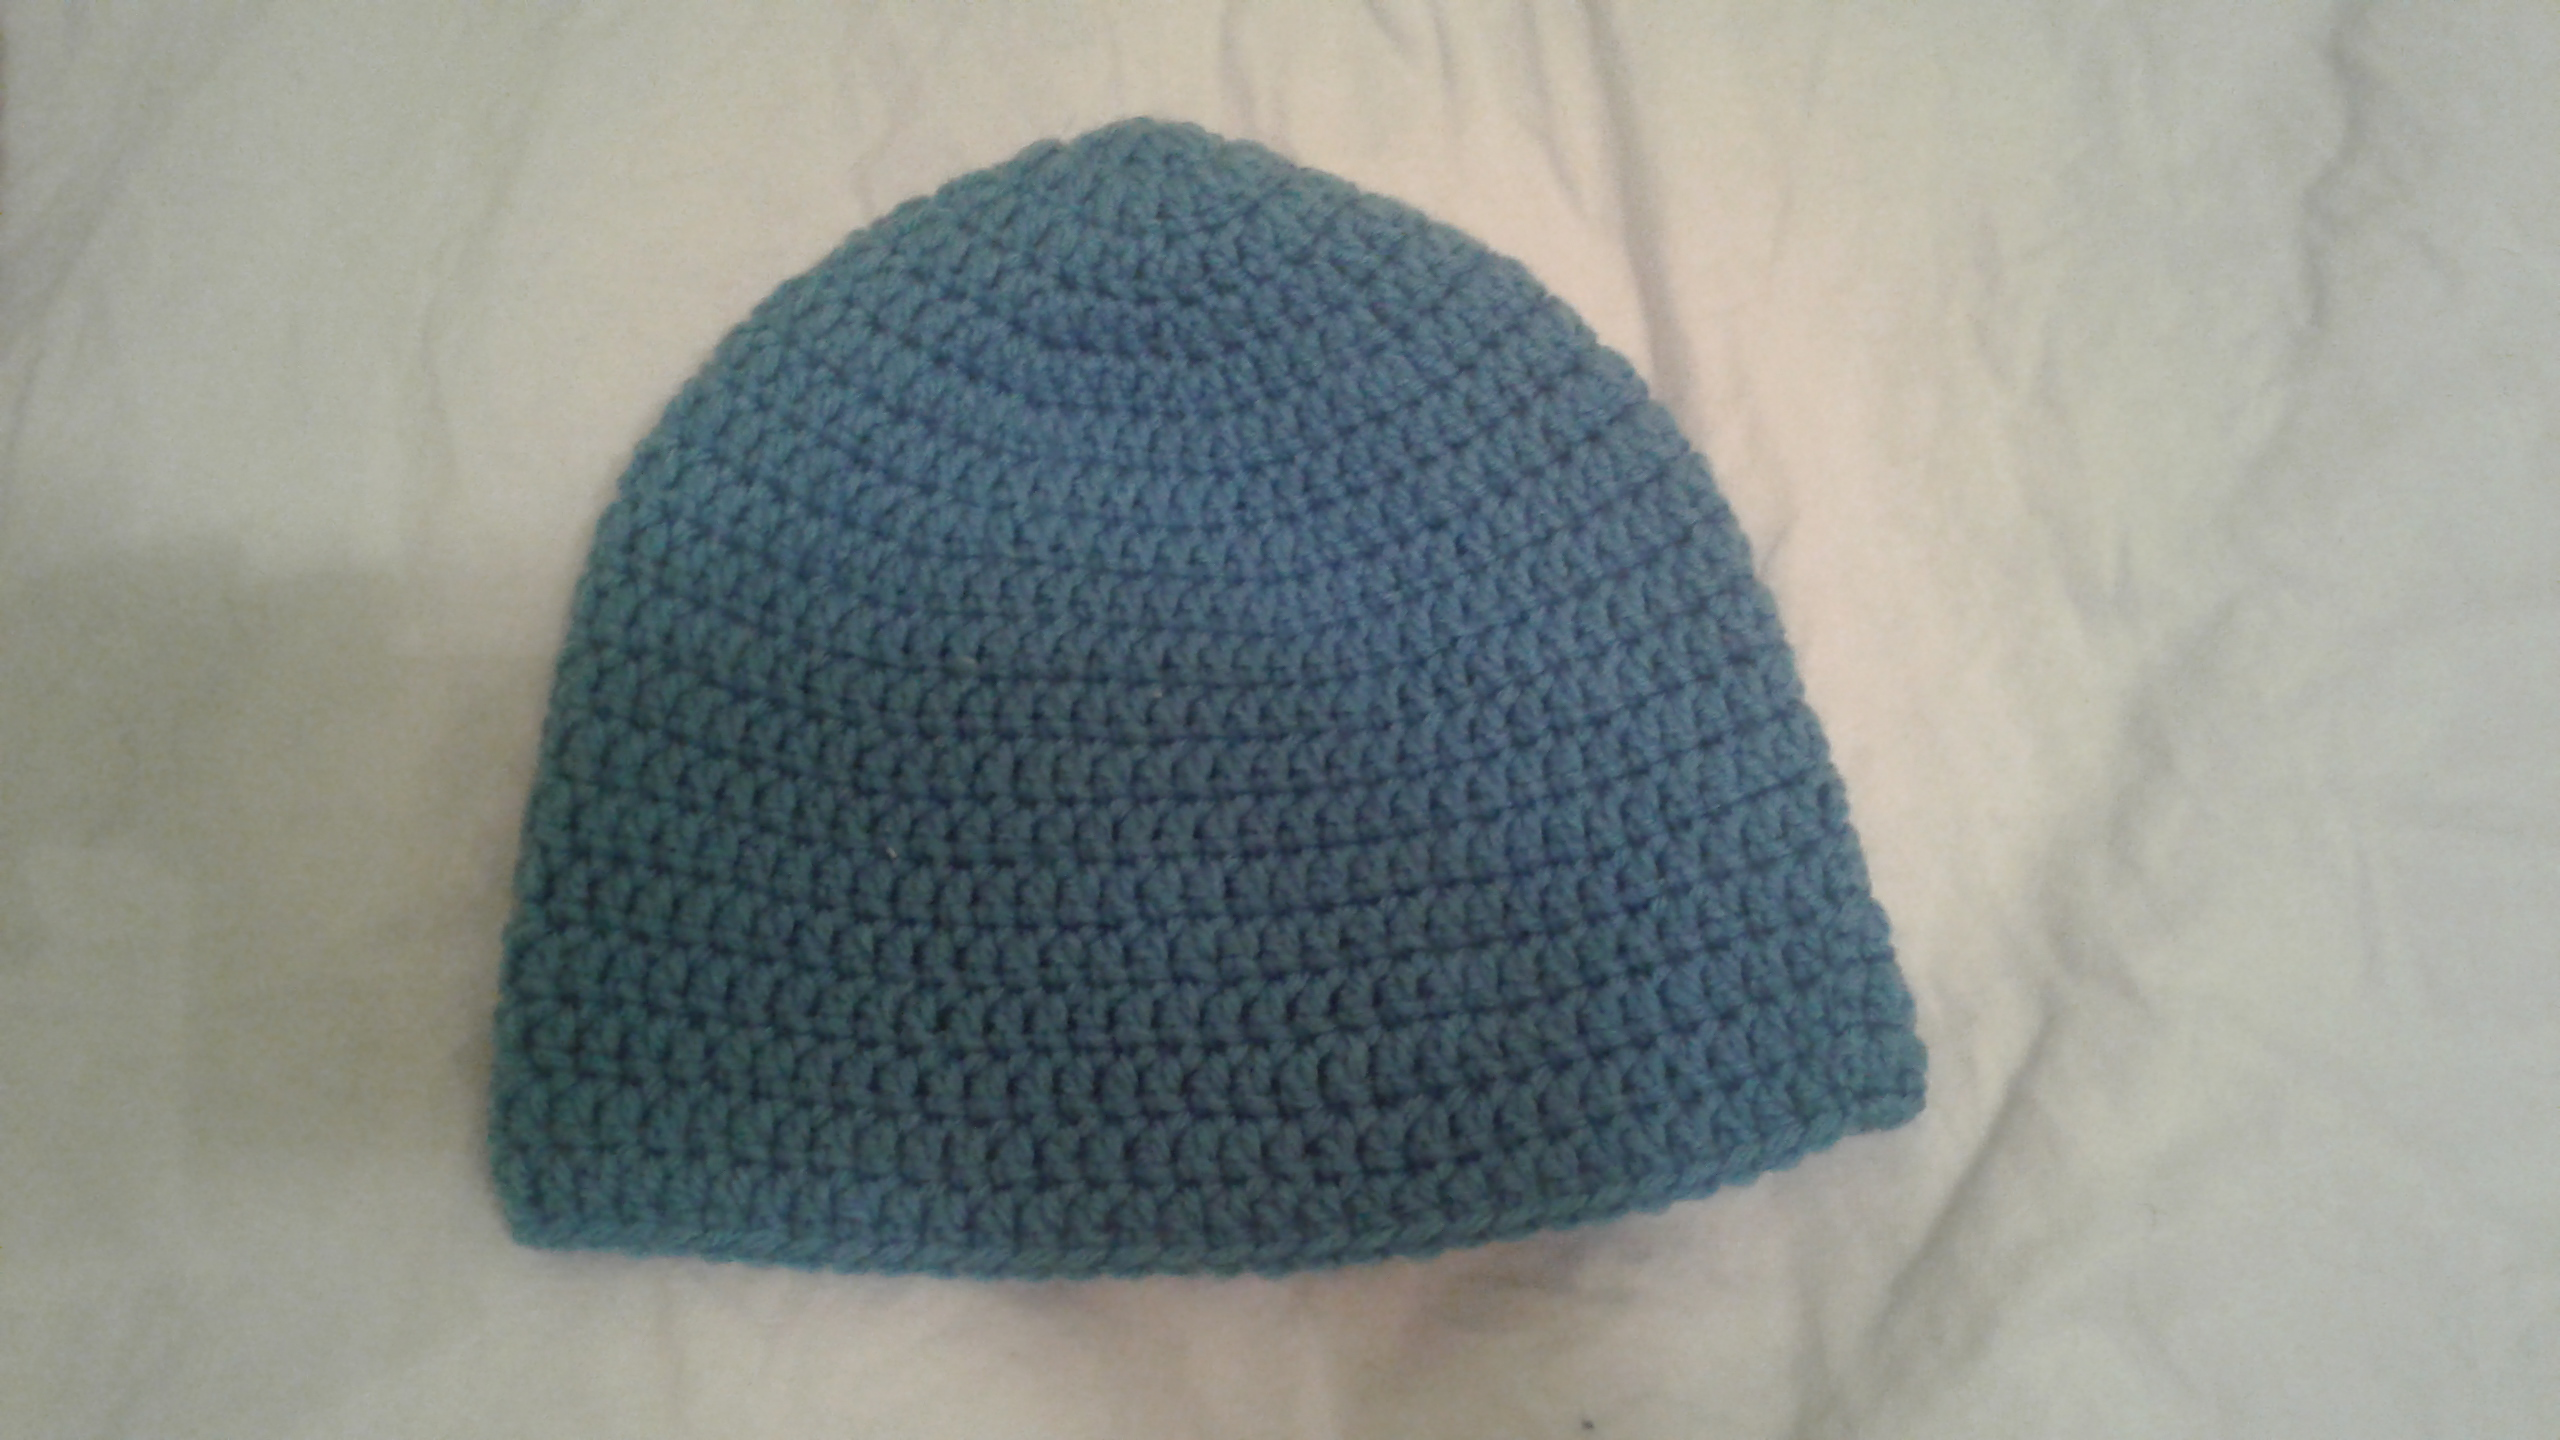 Blue Adult Size Winter Hat - Simple Crochet